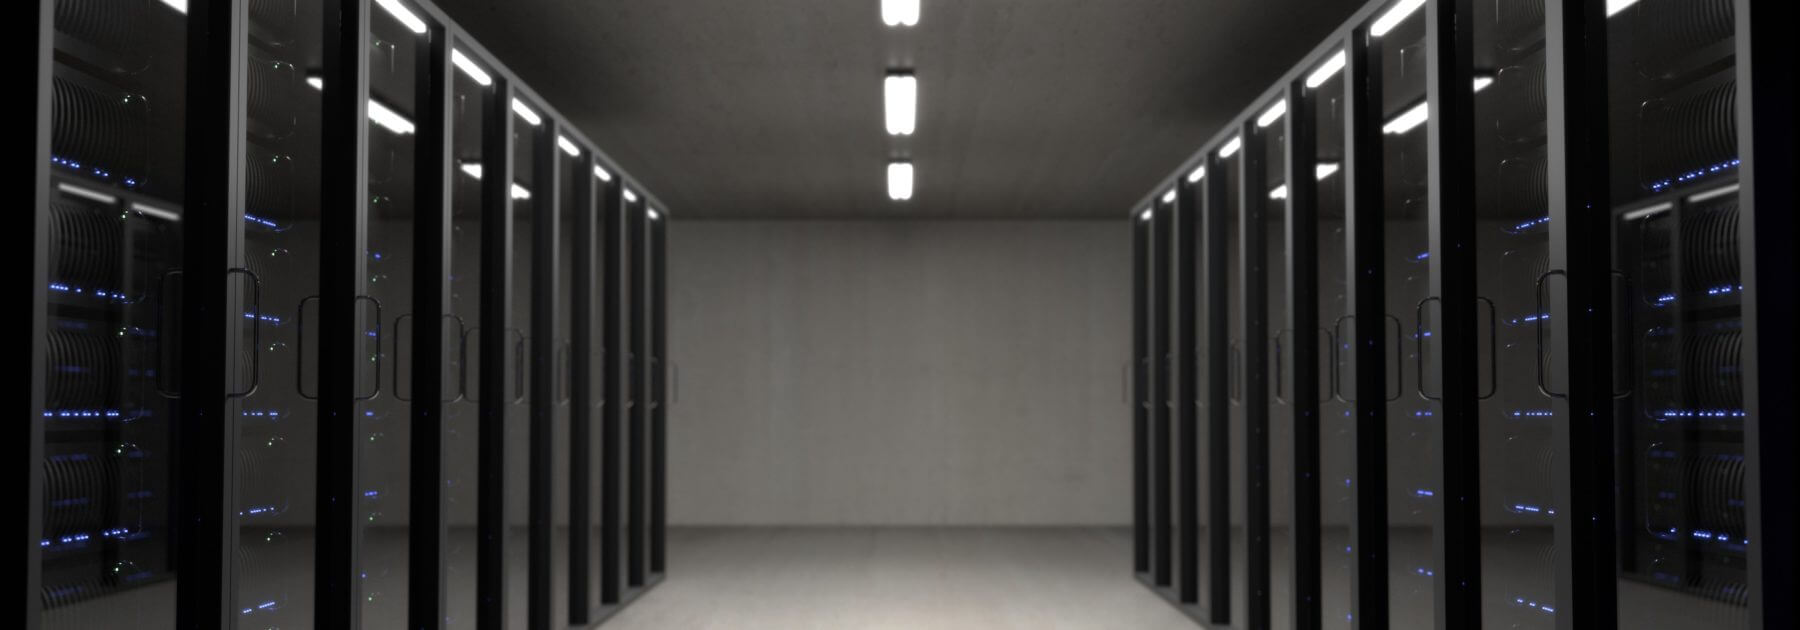 Rows of database machines for Big Data